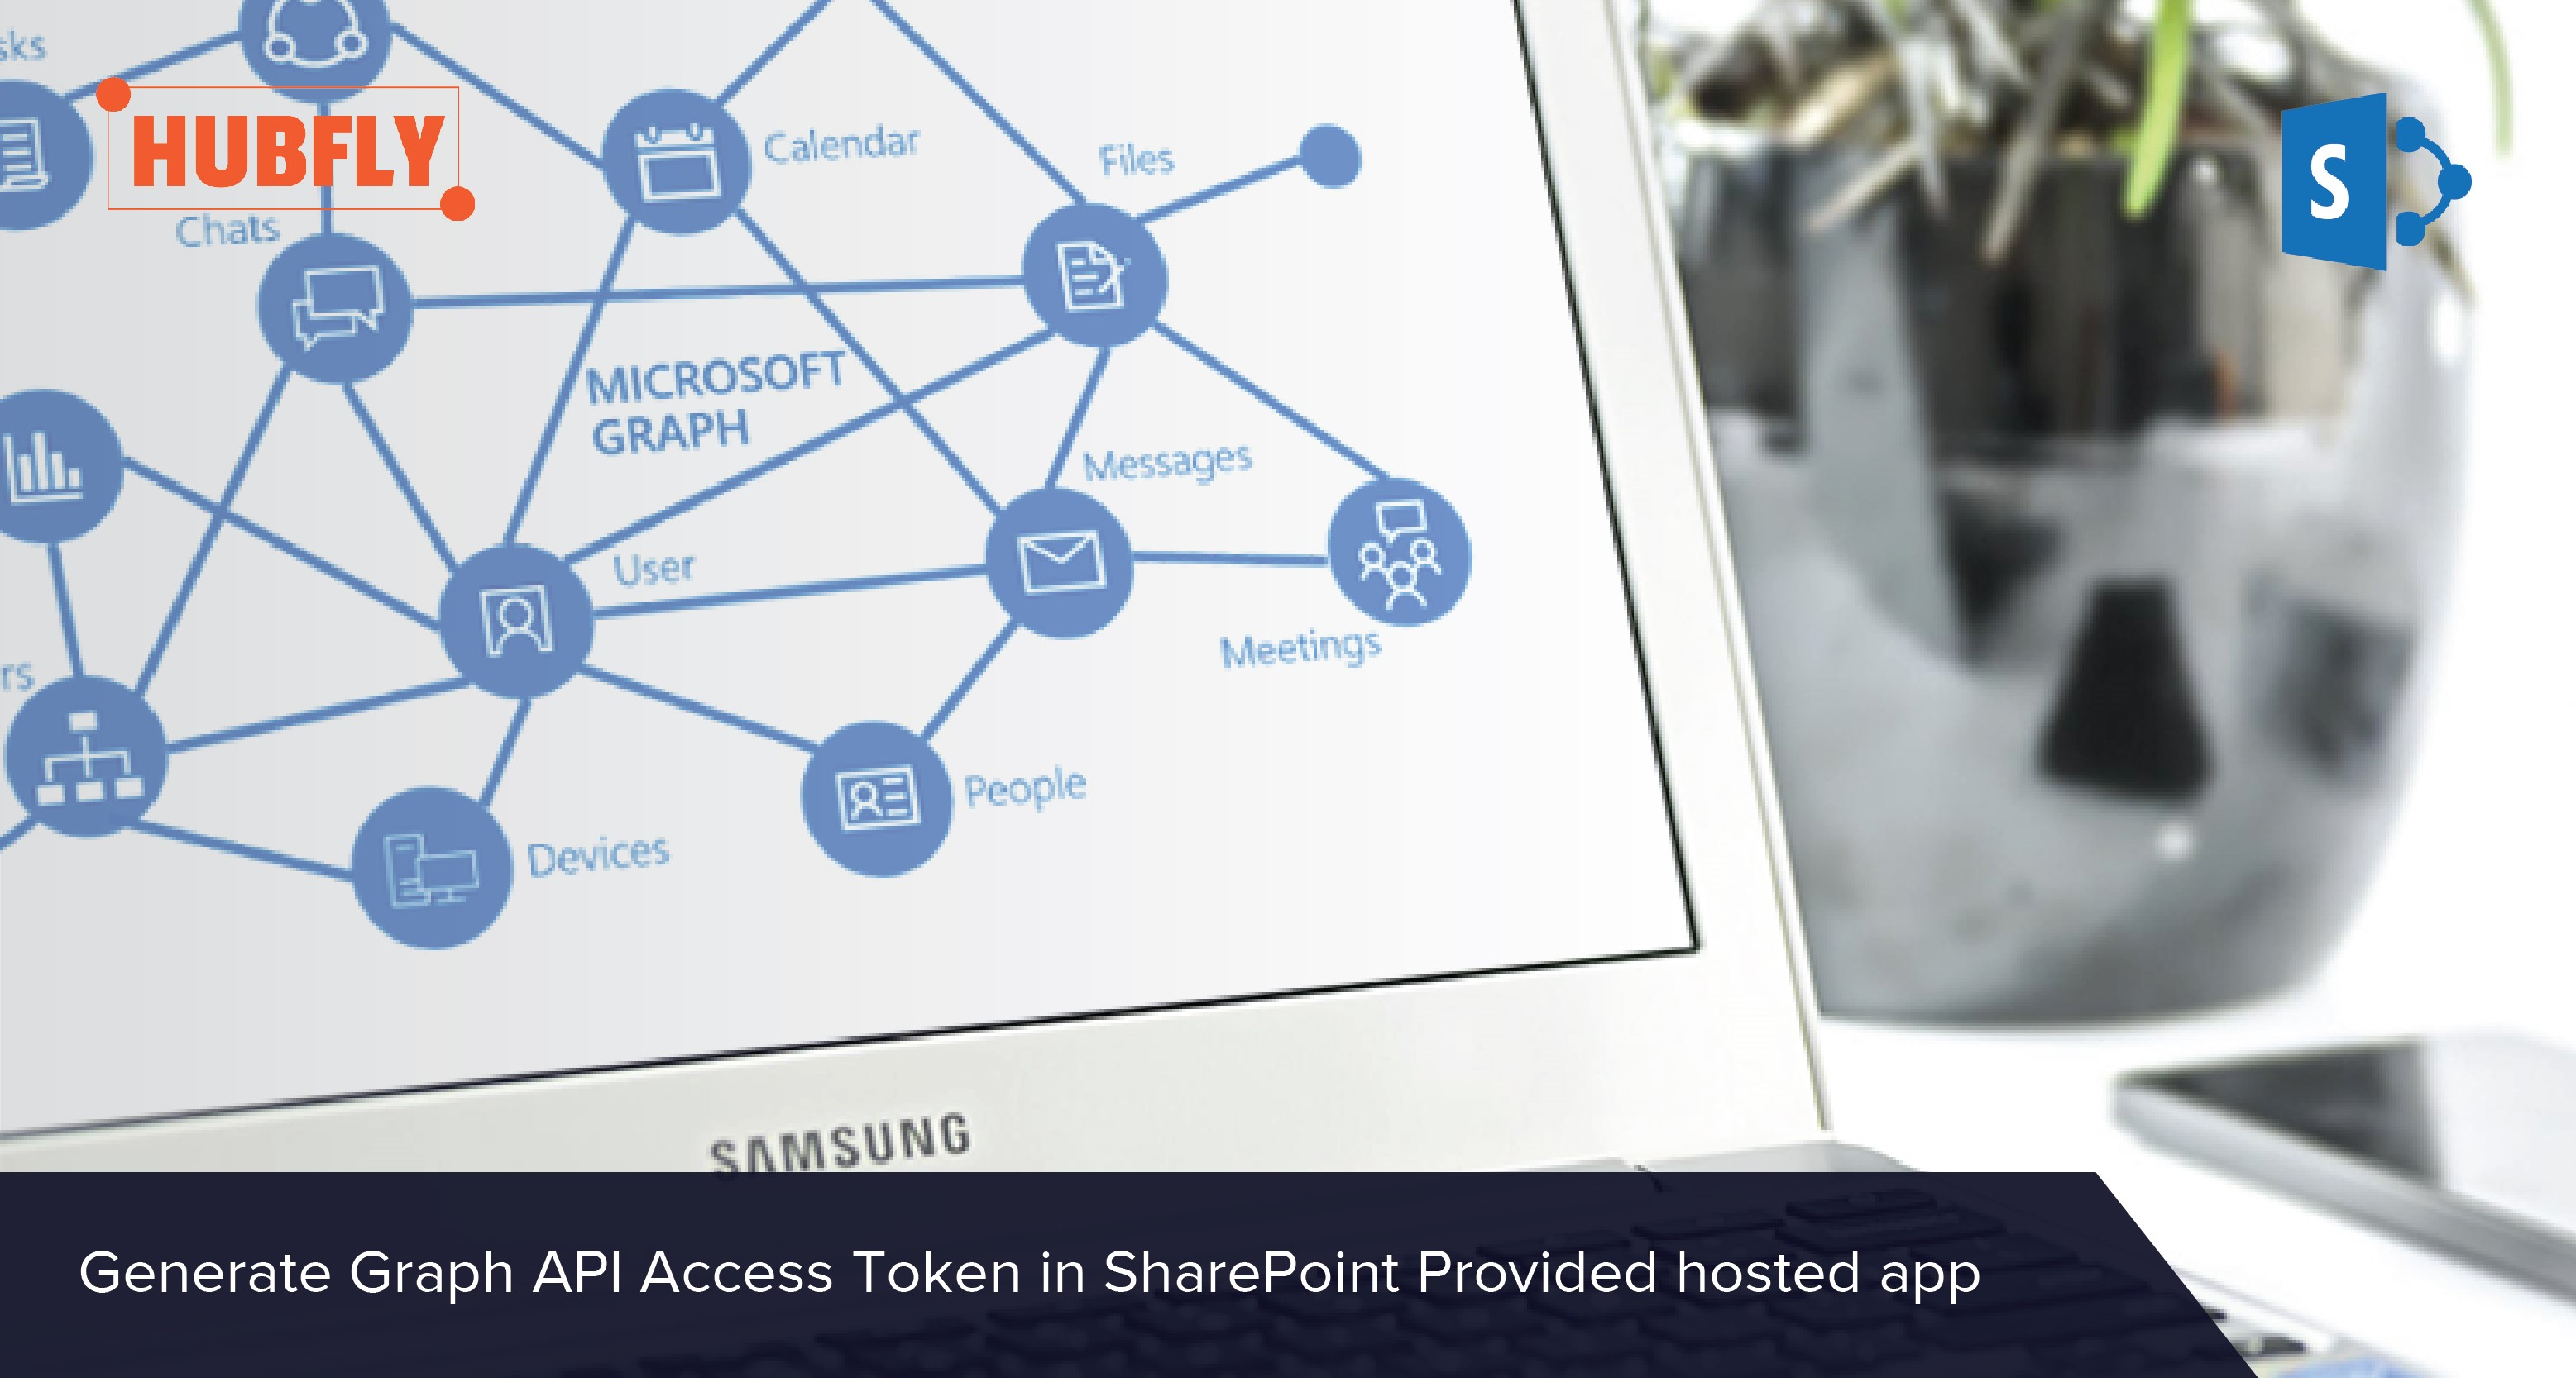 Generate Graph API Access Token in SharePoint Provided